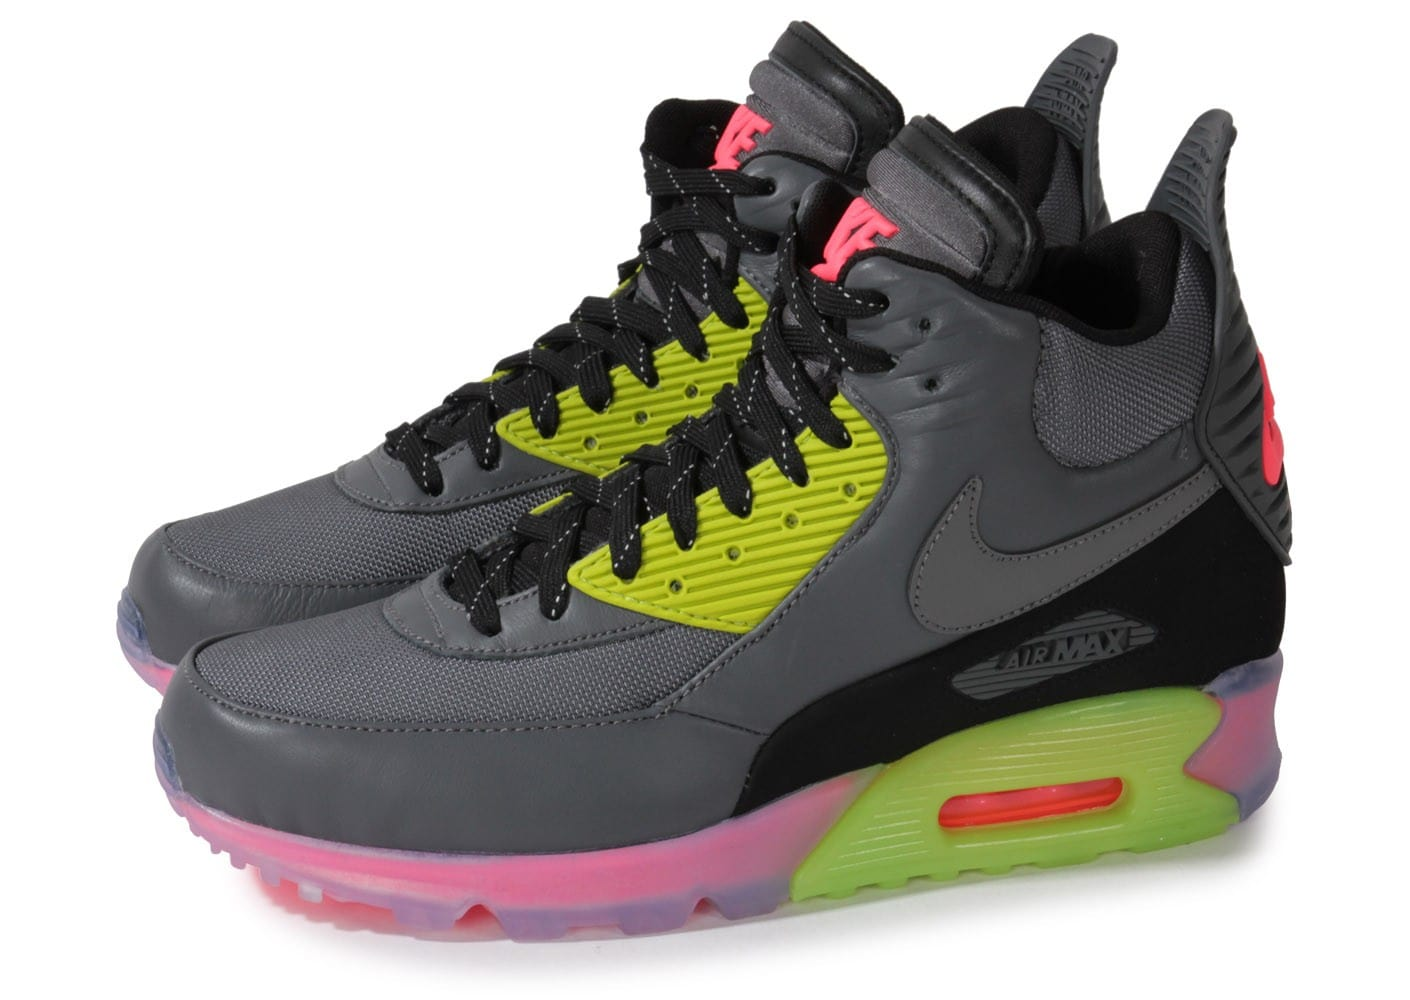 magasin en ligne 20b32 89290 Nike Air Max 90 Sneakerboot Ice - Chaussures Baskets homme ...